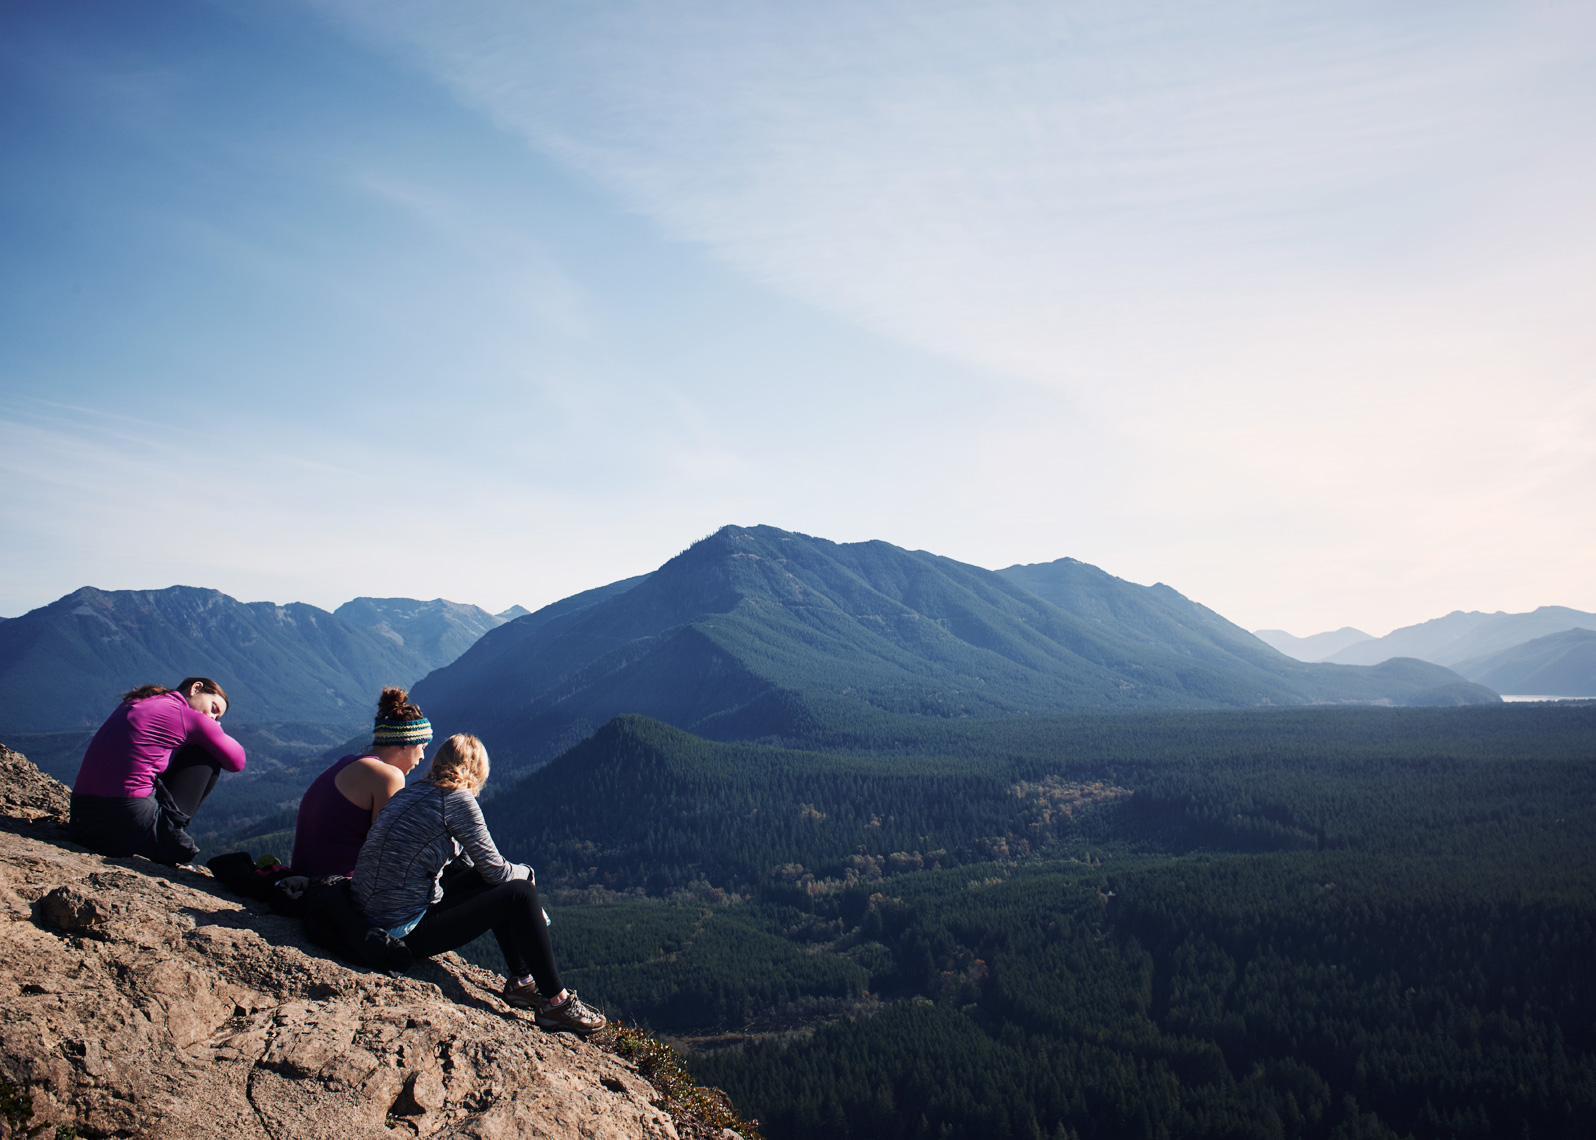 Hikers rest at the peak overlooking rattlesnake lake